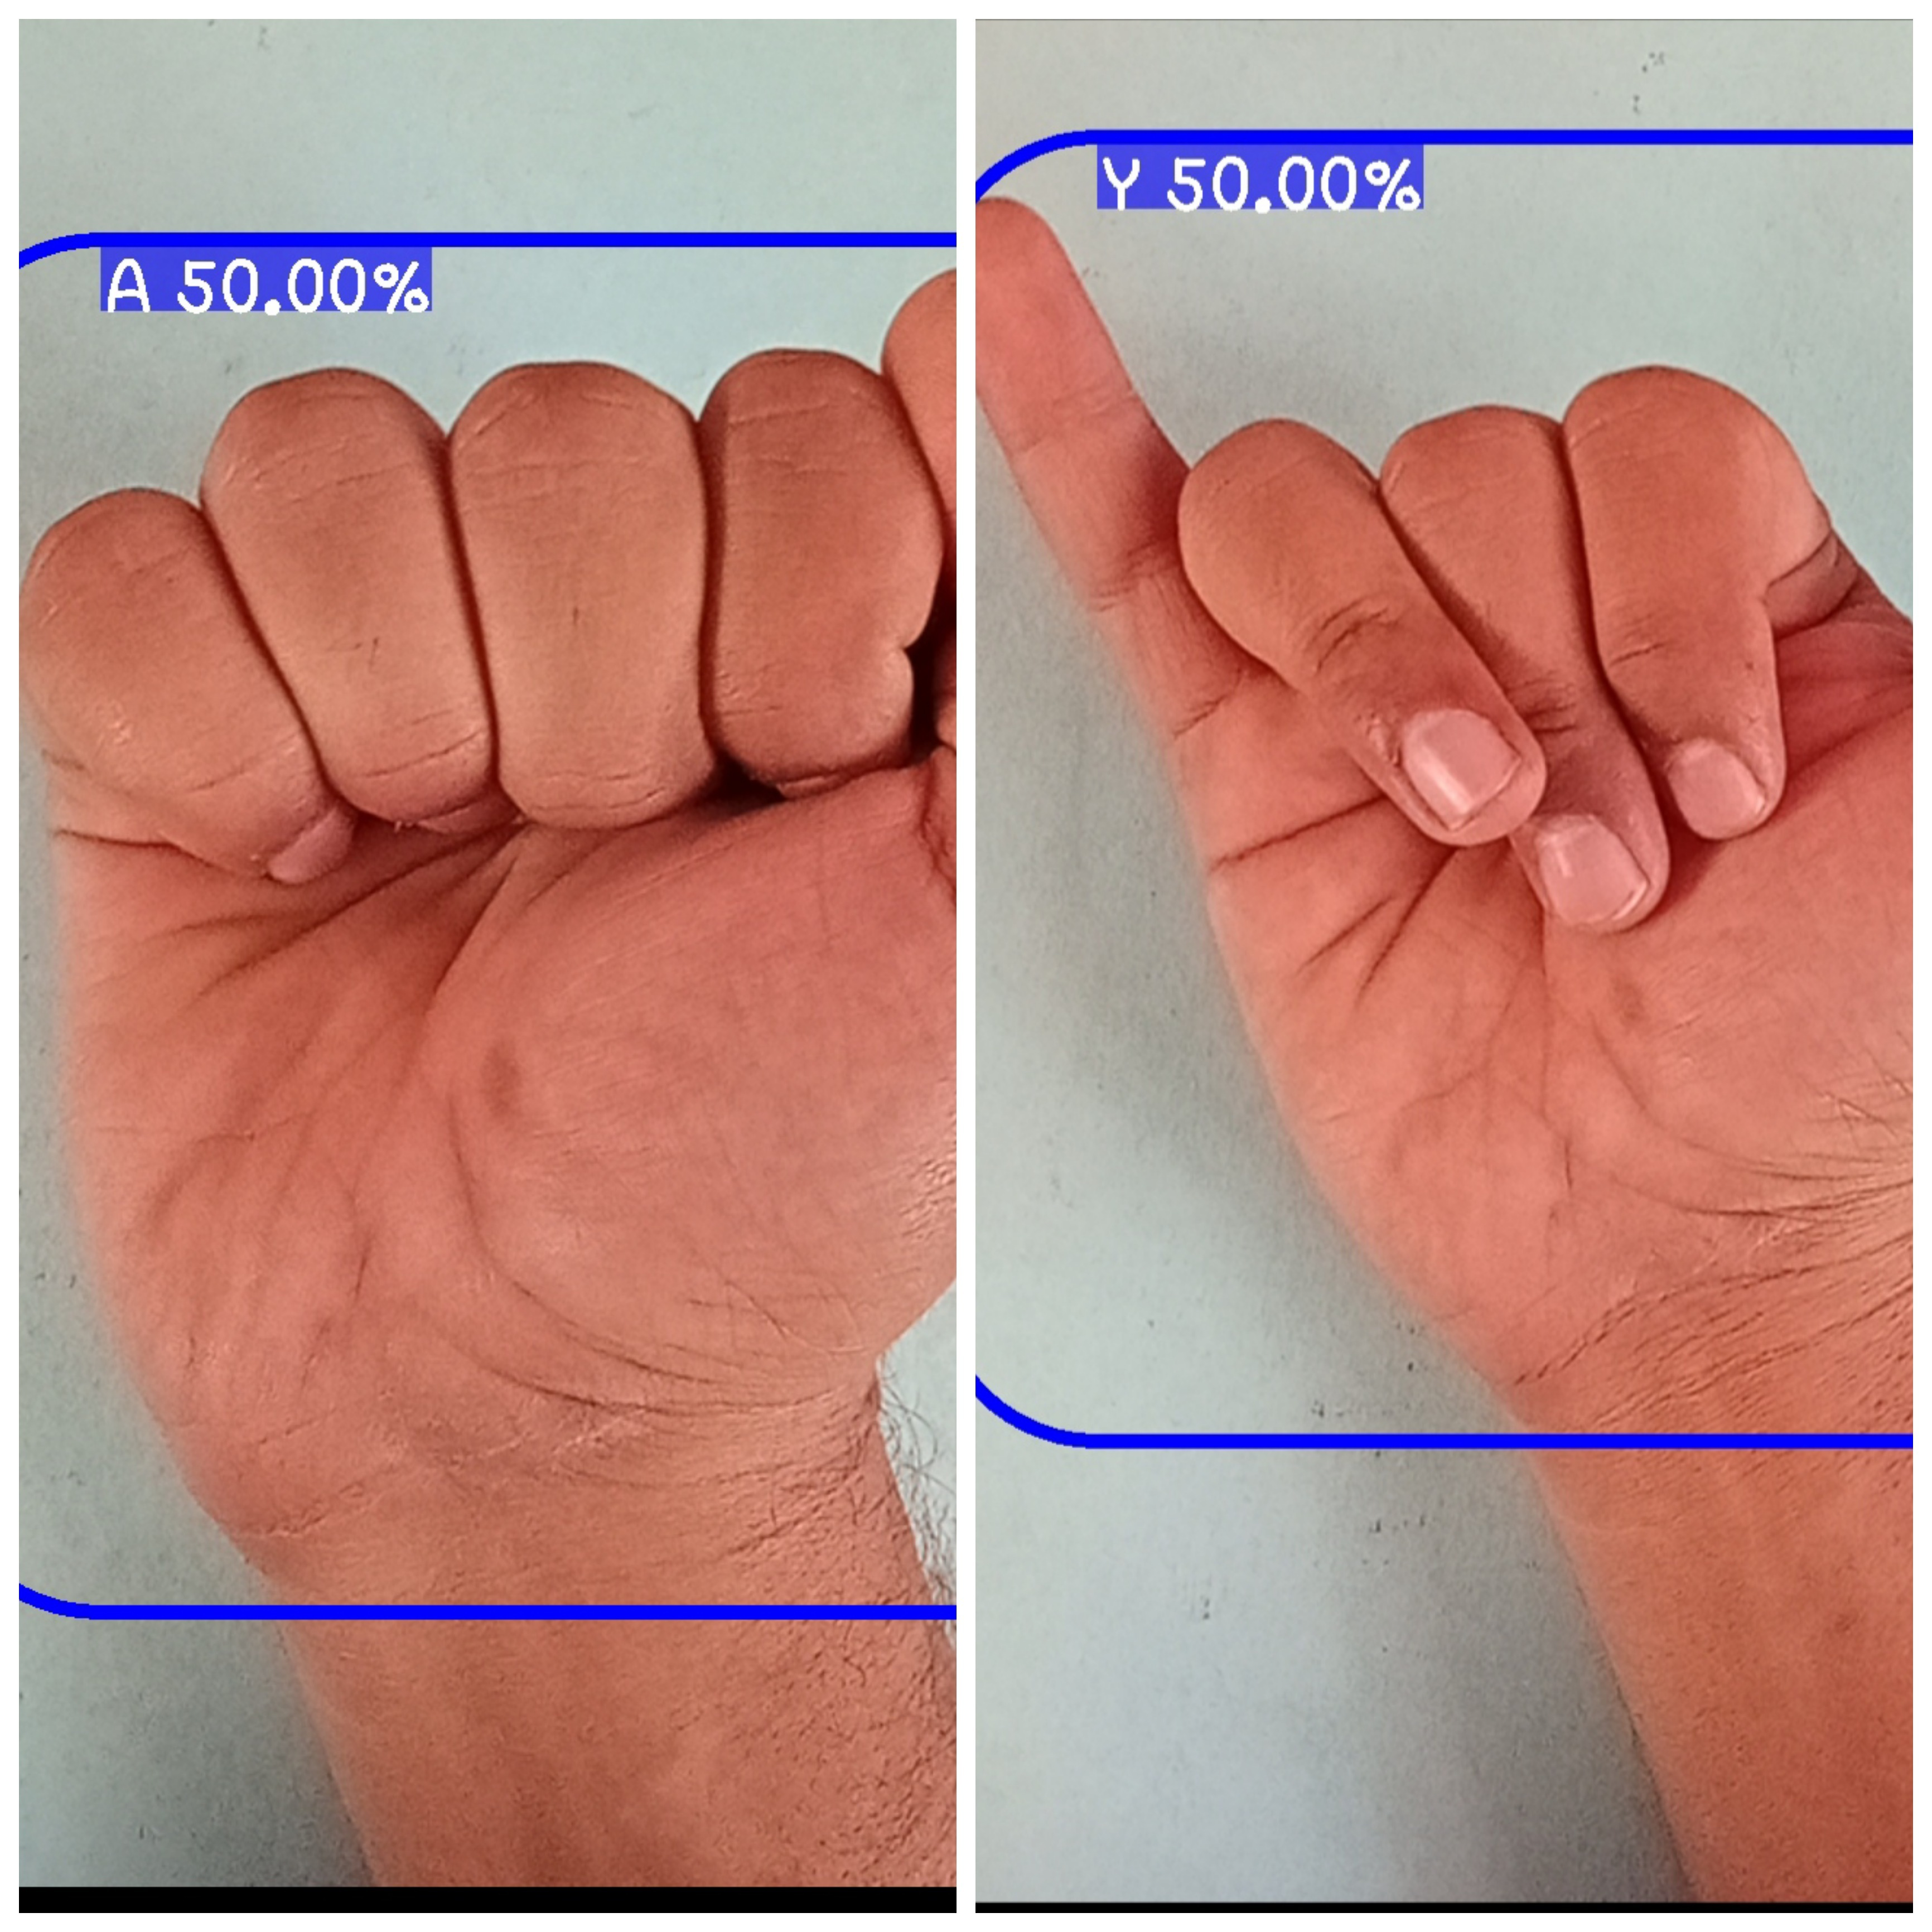 Real Time Hand sign Recogntion using tesnorflow and Python